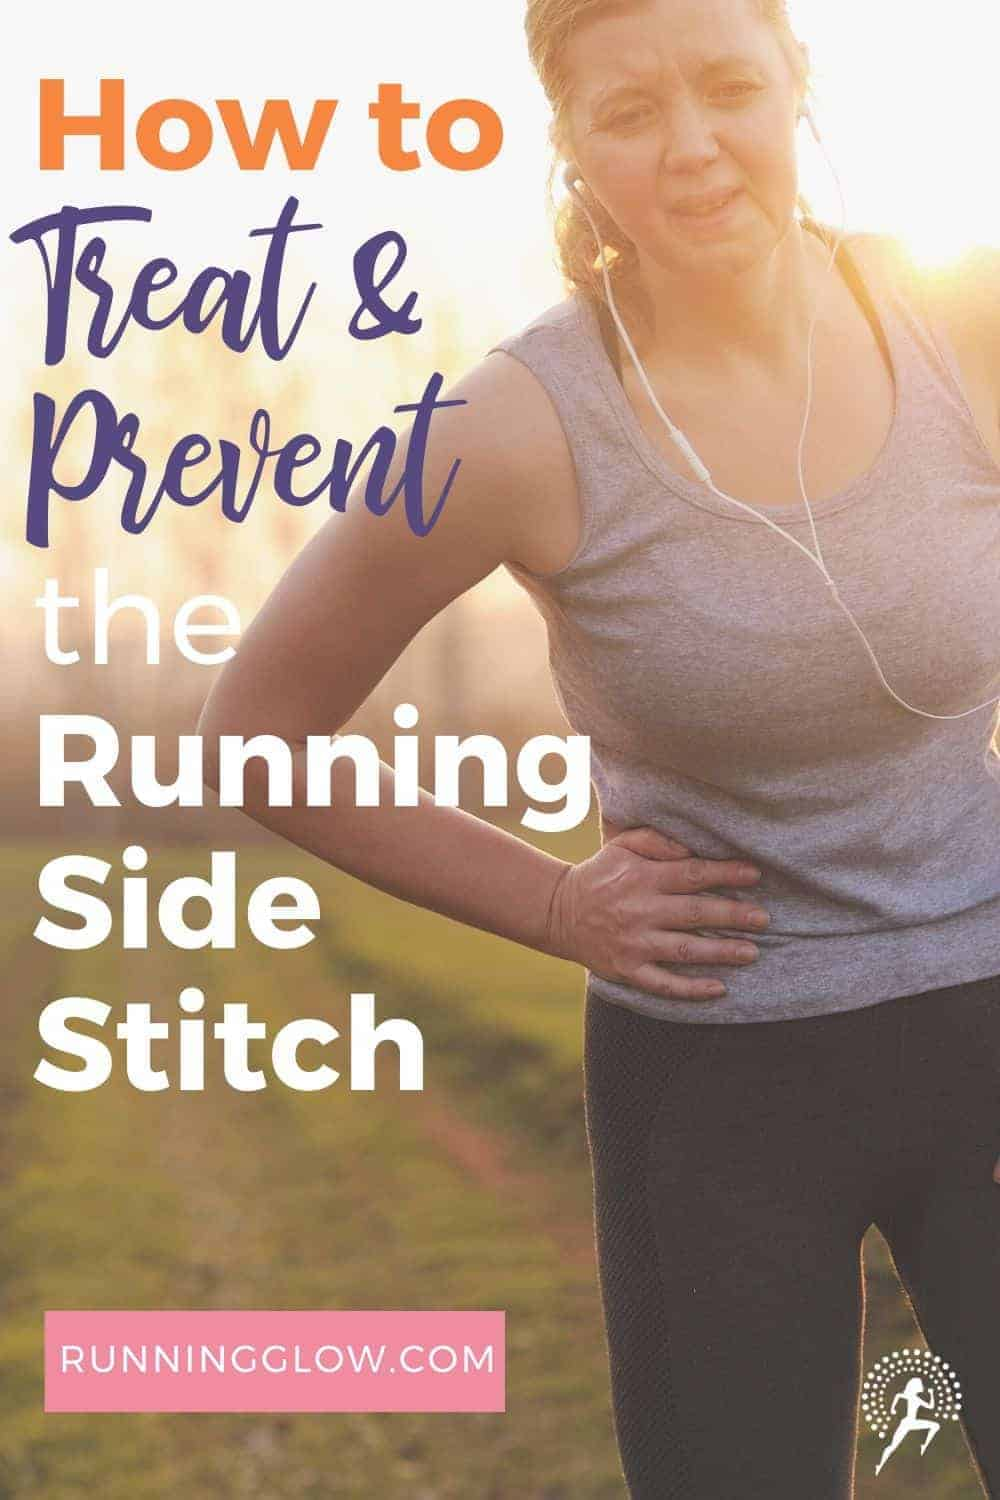 female runner with side stitch in pain